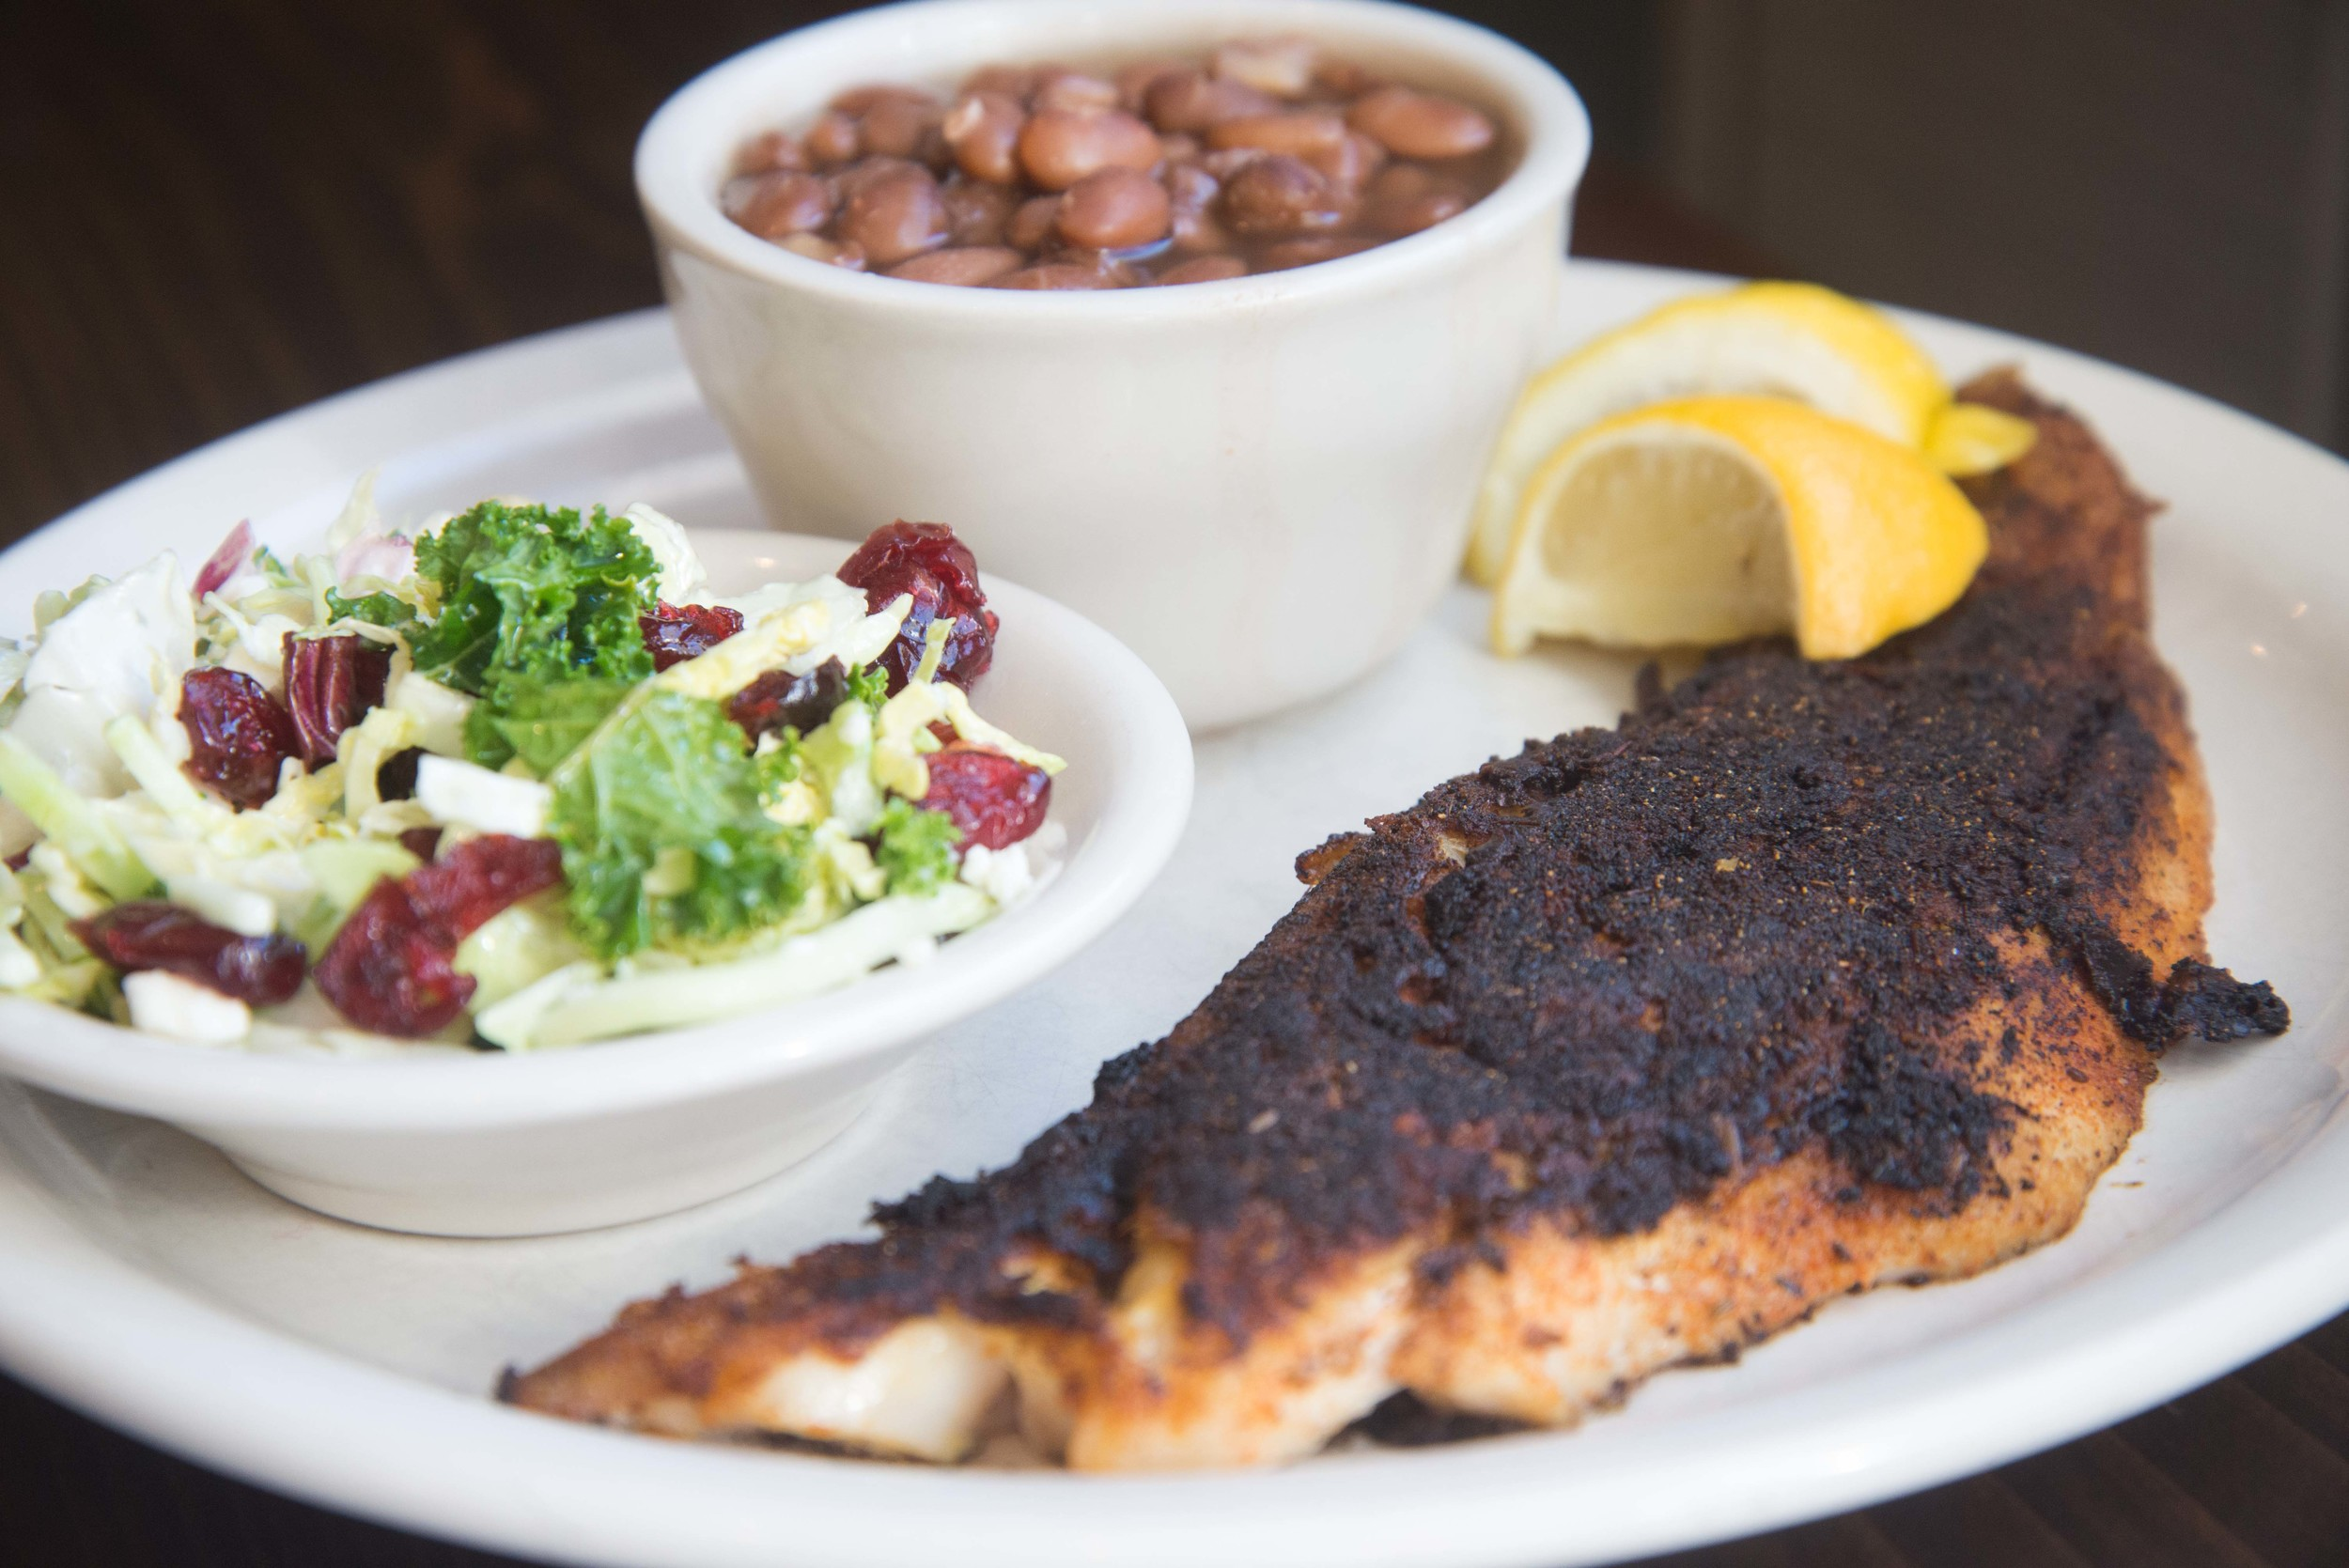 Blackened Trout Fillet